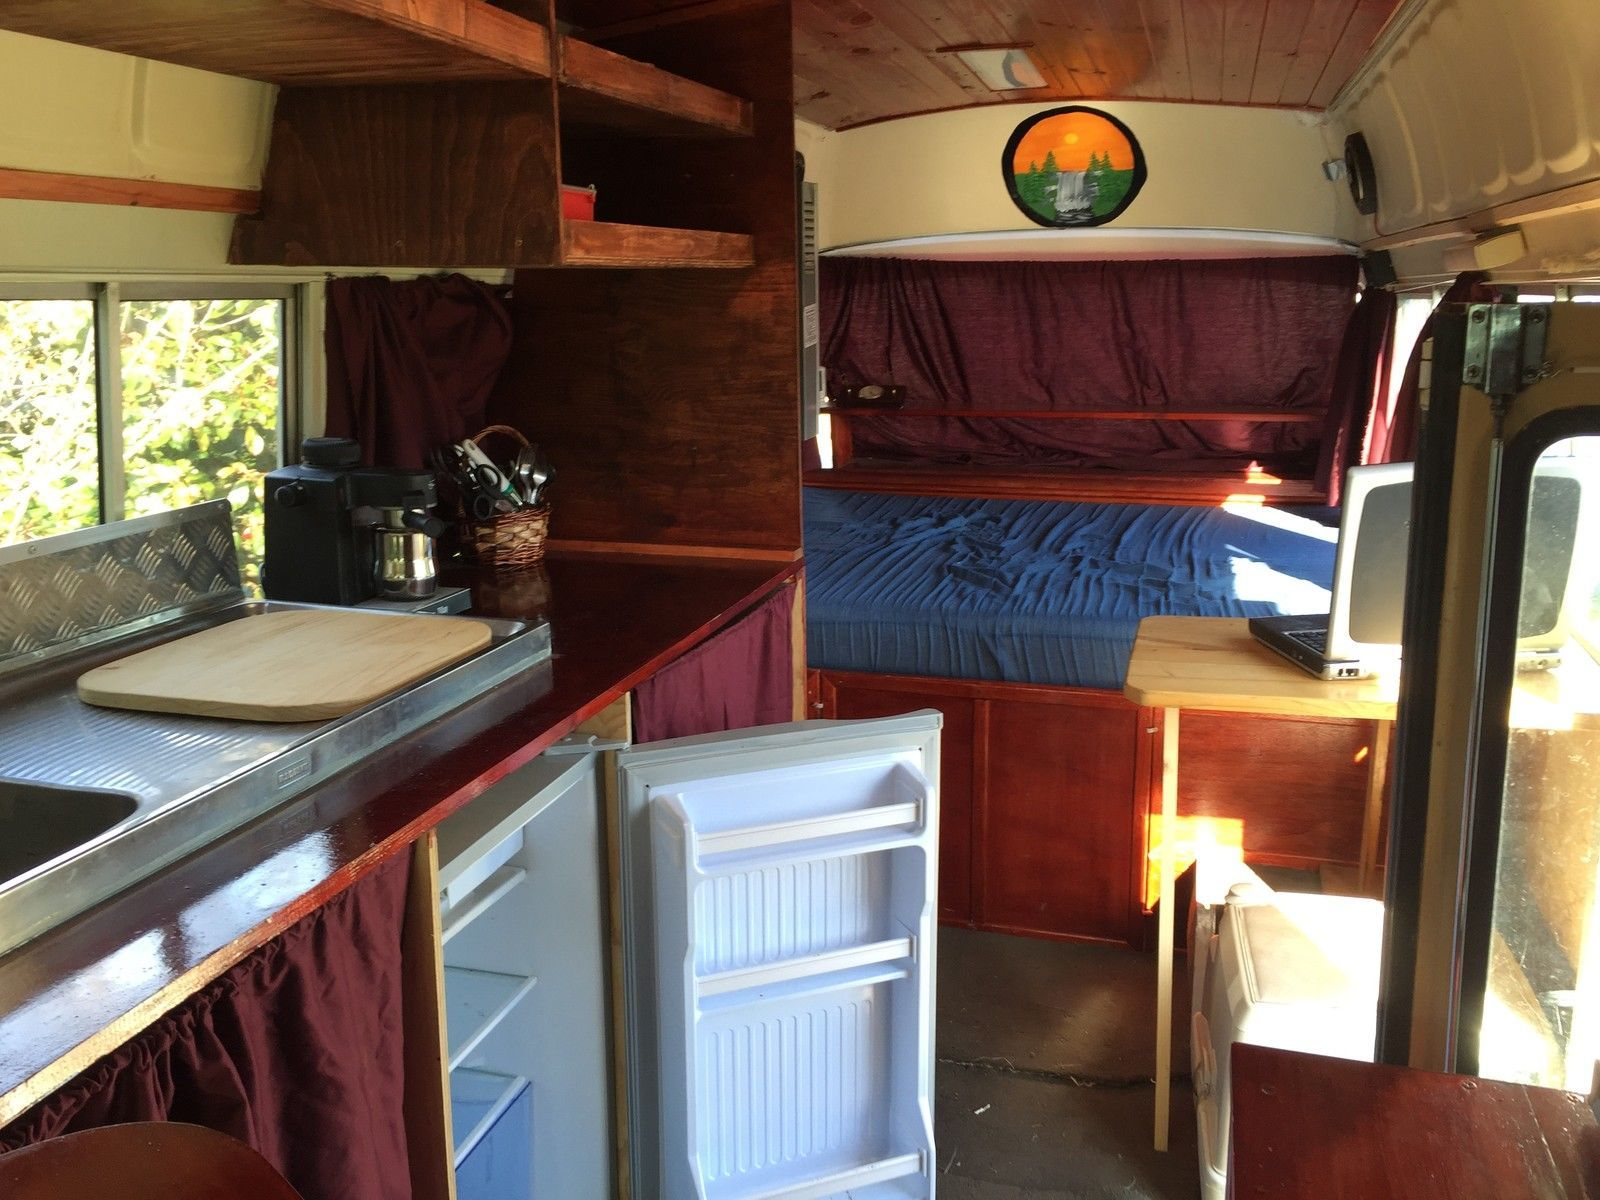 Toyota coaster campervan 1982 model lots of features in